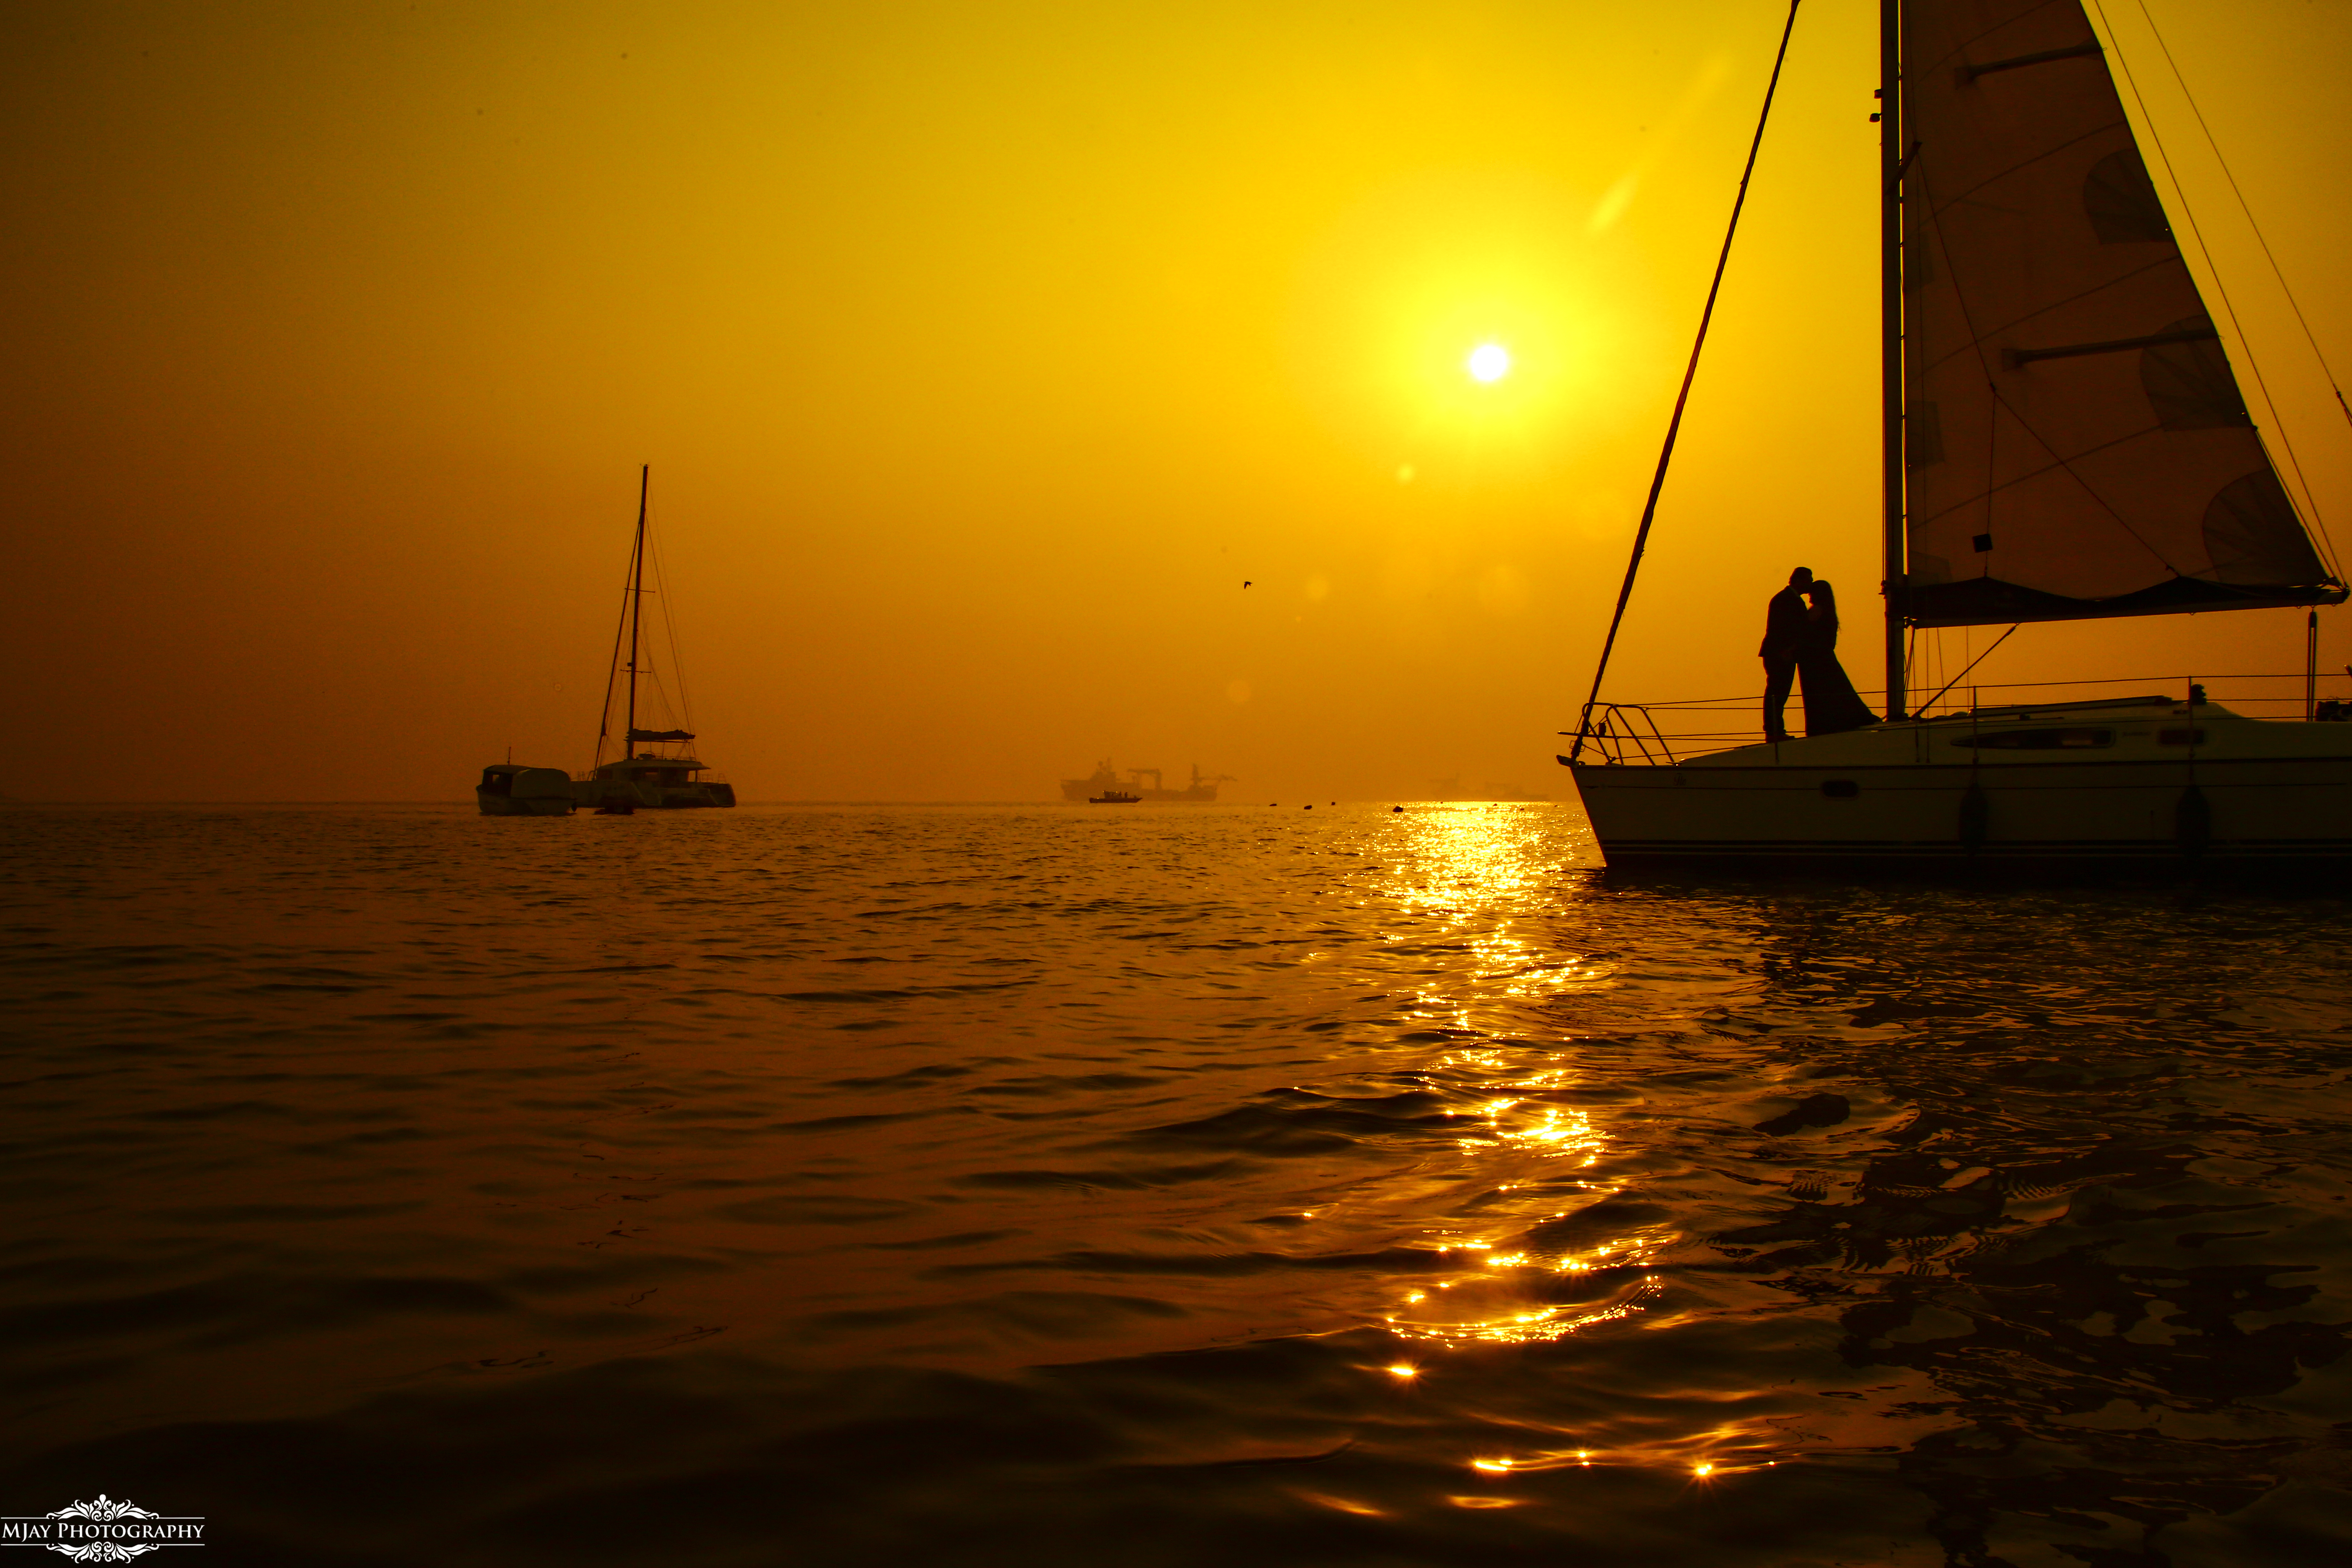 Couple Pre Wedding Photography in a Boat in Evening